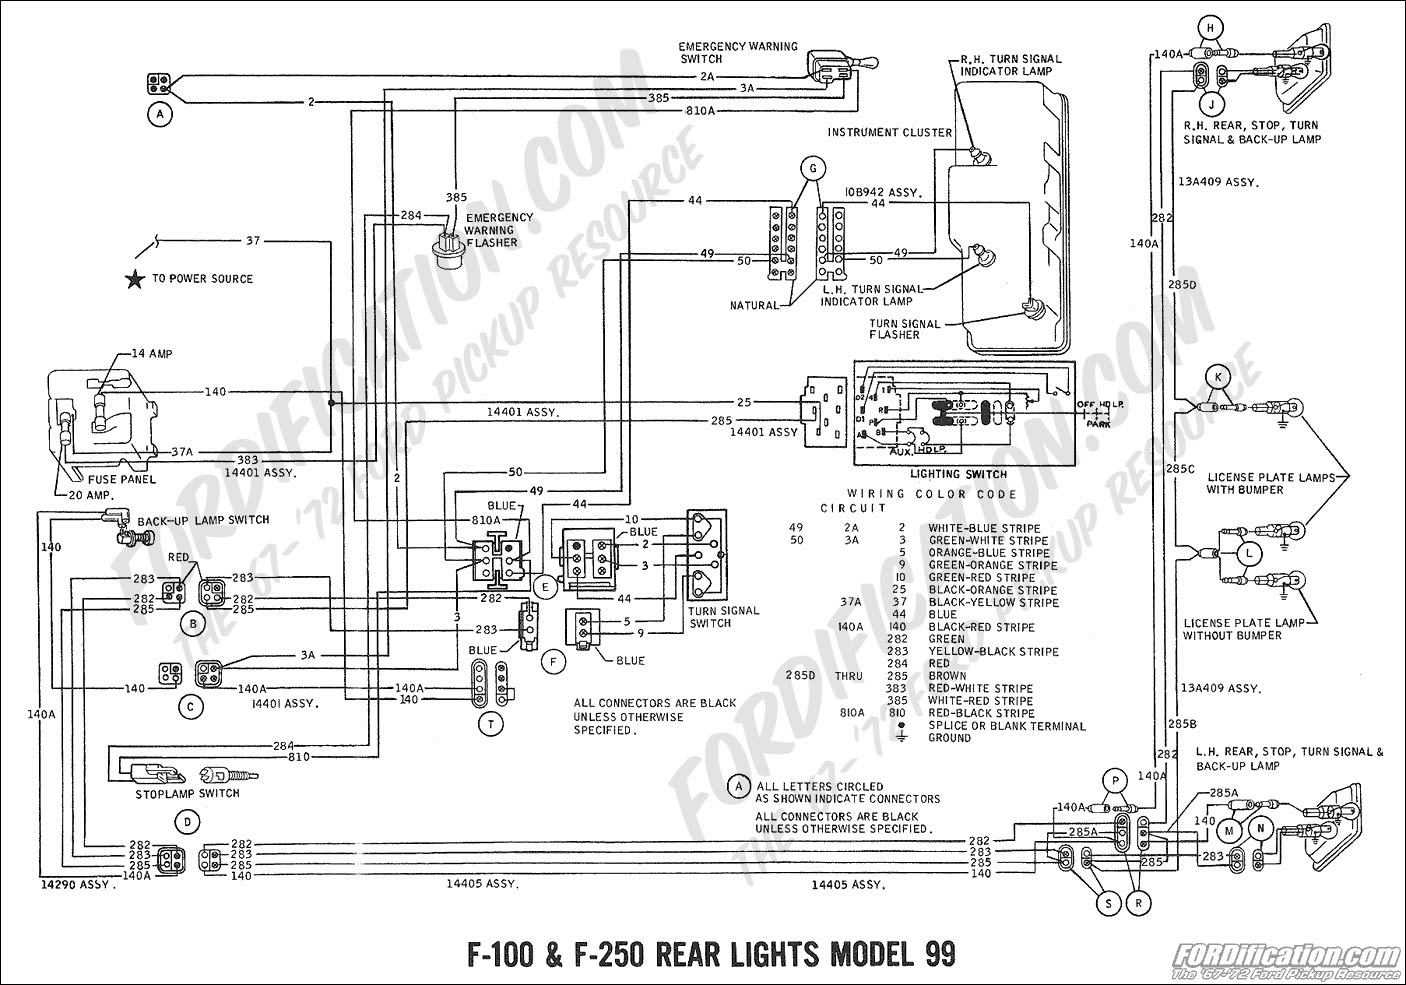 12 Pin Plug Wiring Diagram Caravan